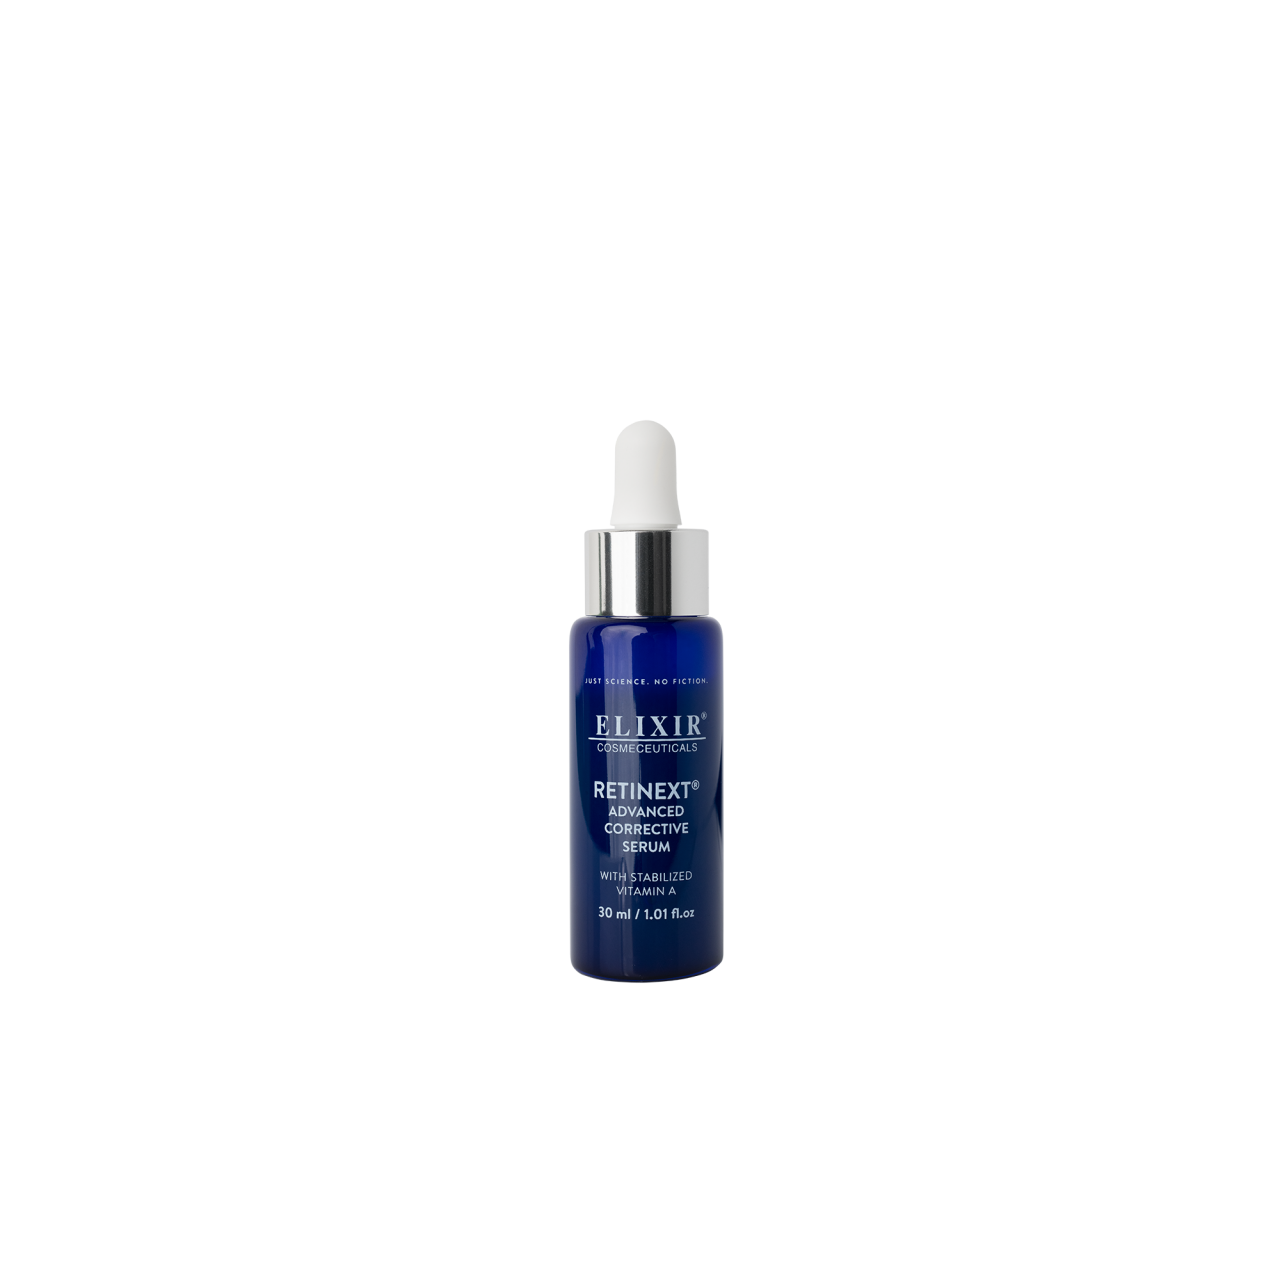 Retinext Advanced Corrective Serum